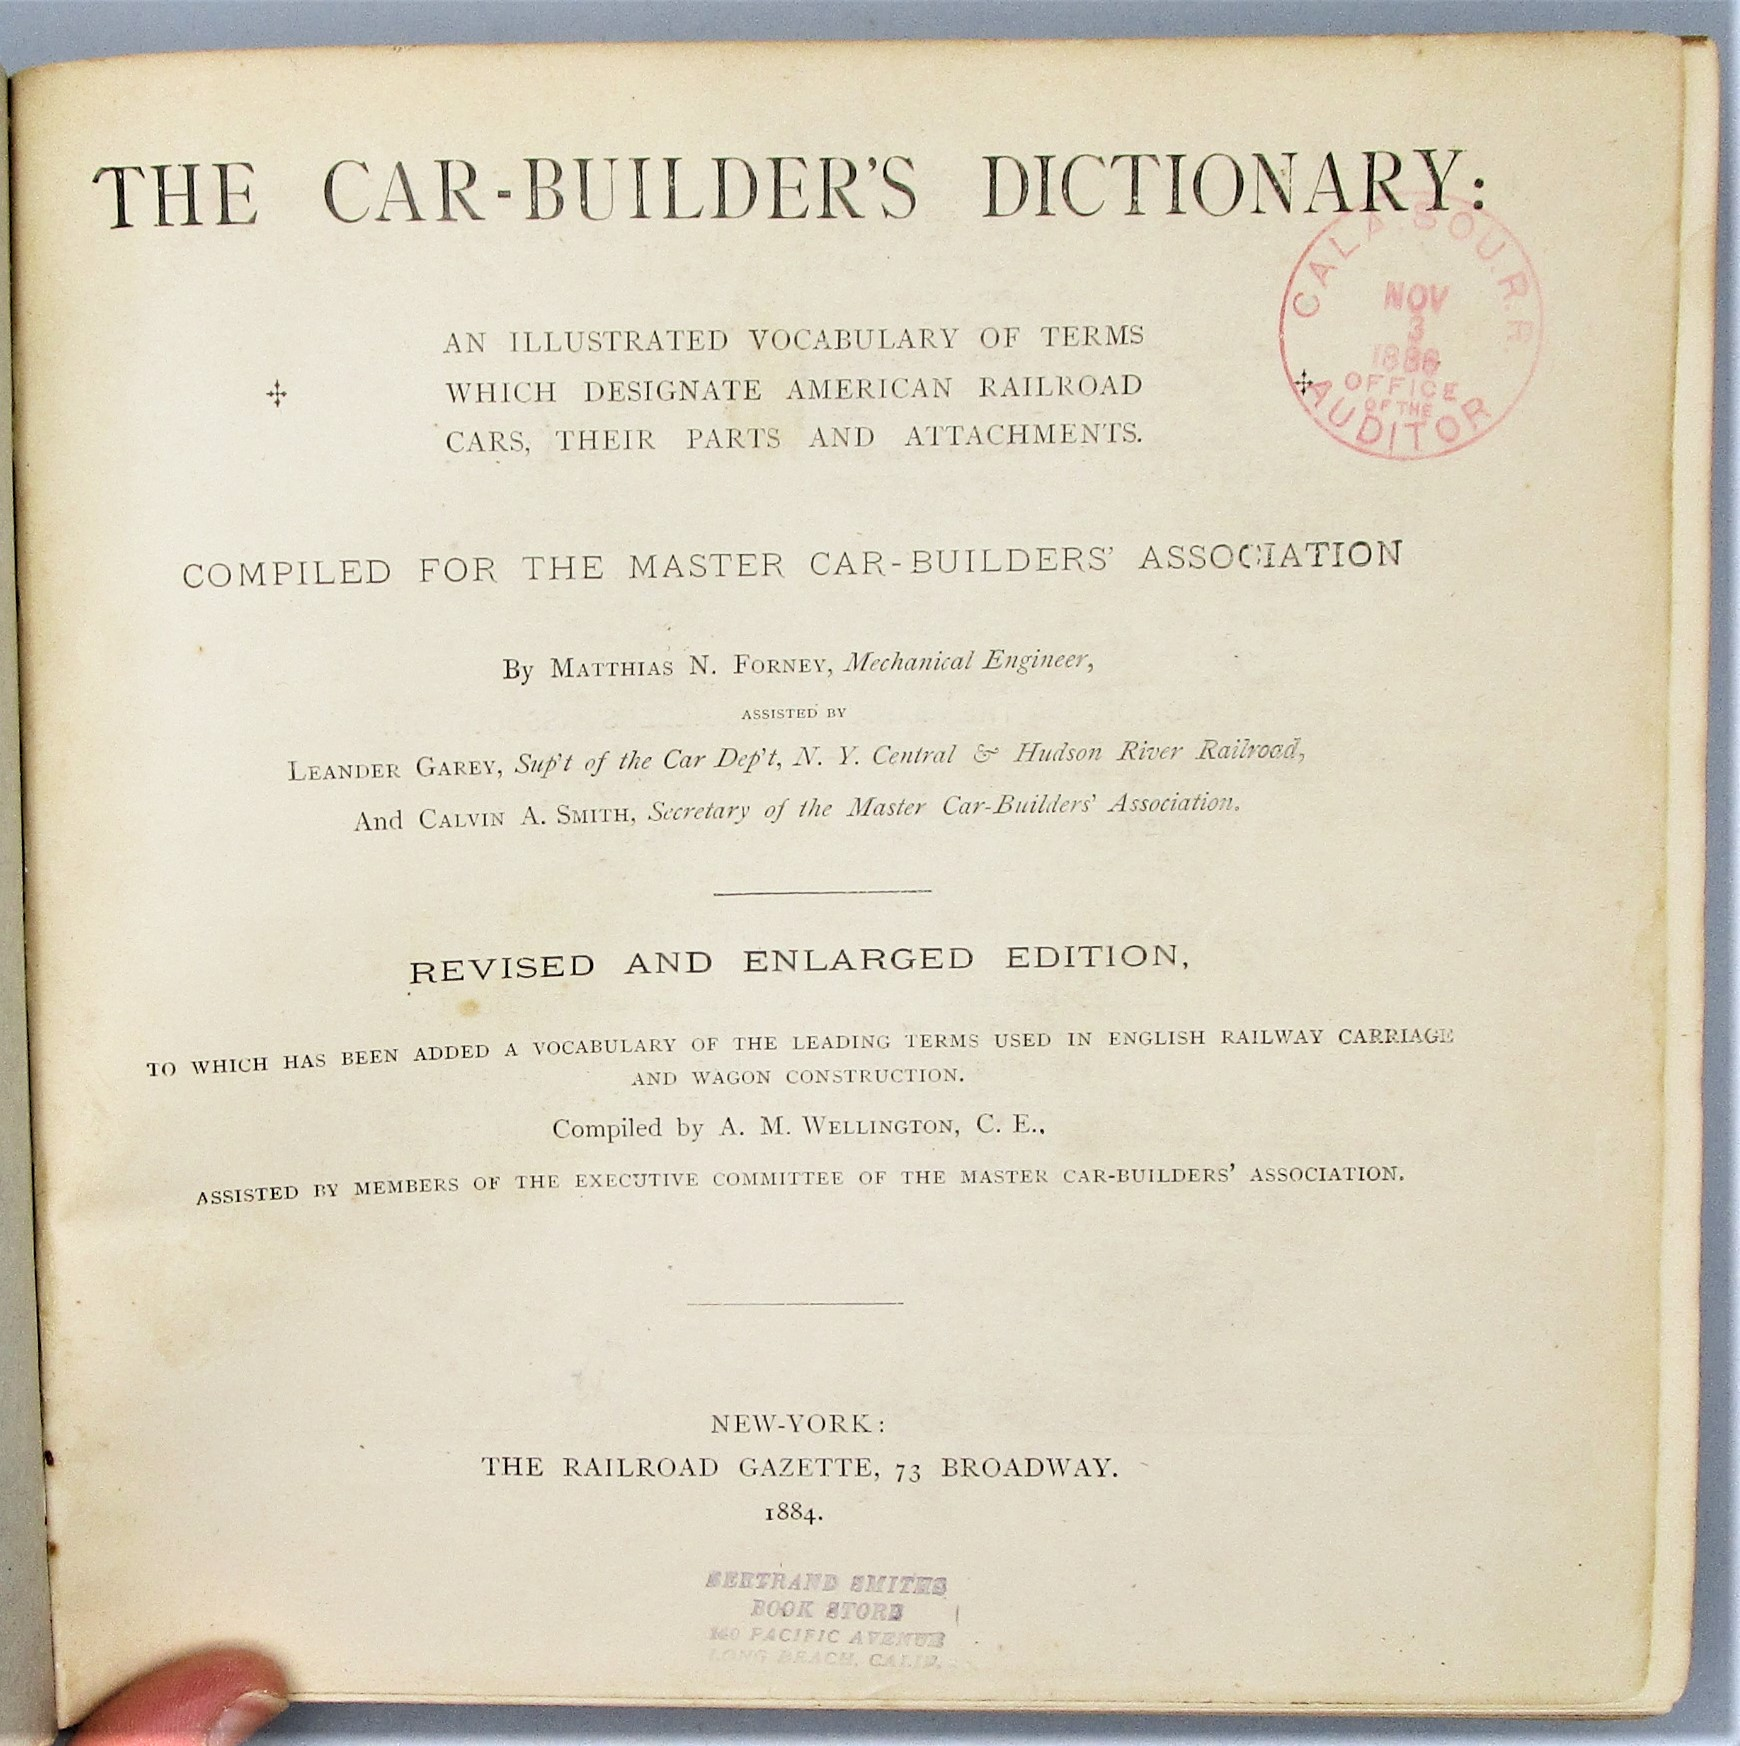 RAILROAD CAR-BUILDER'S DICTIONARY, by Matthias N. Forney - 1884